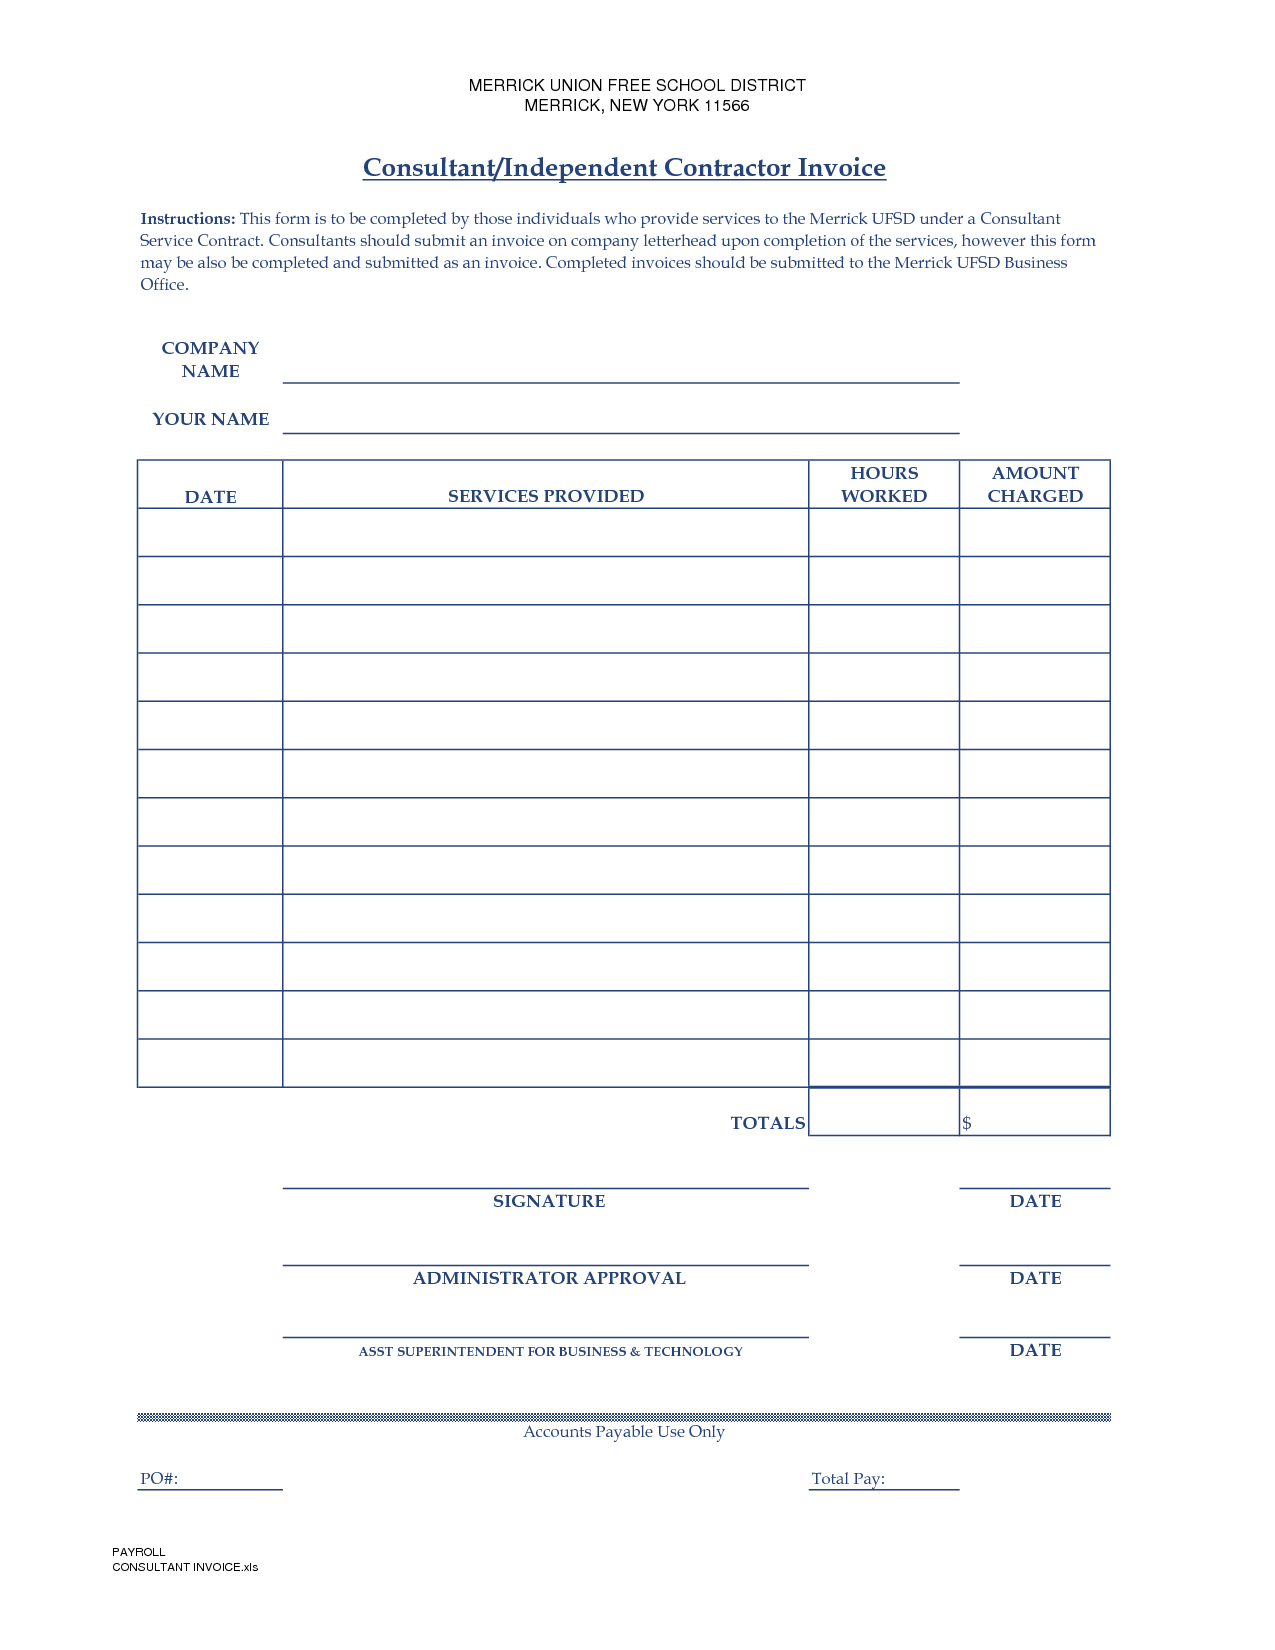 simple invoice template independent contractor – notators, Invoice templates